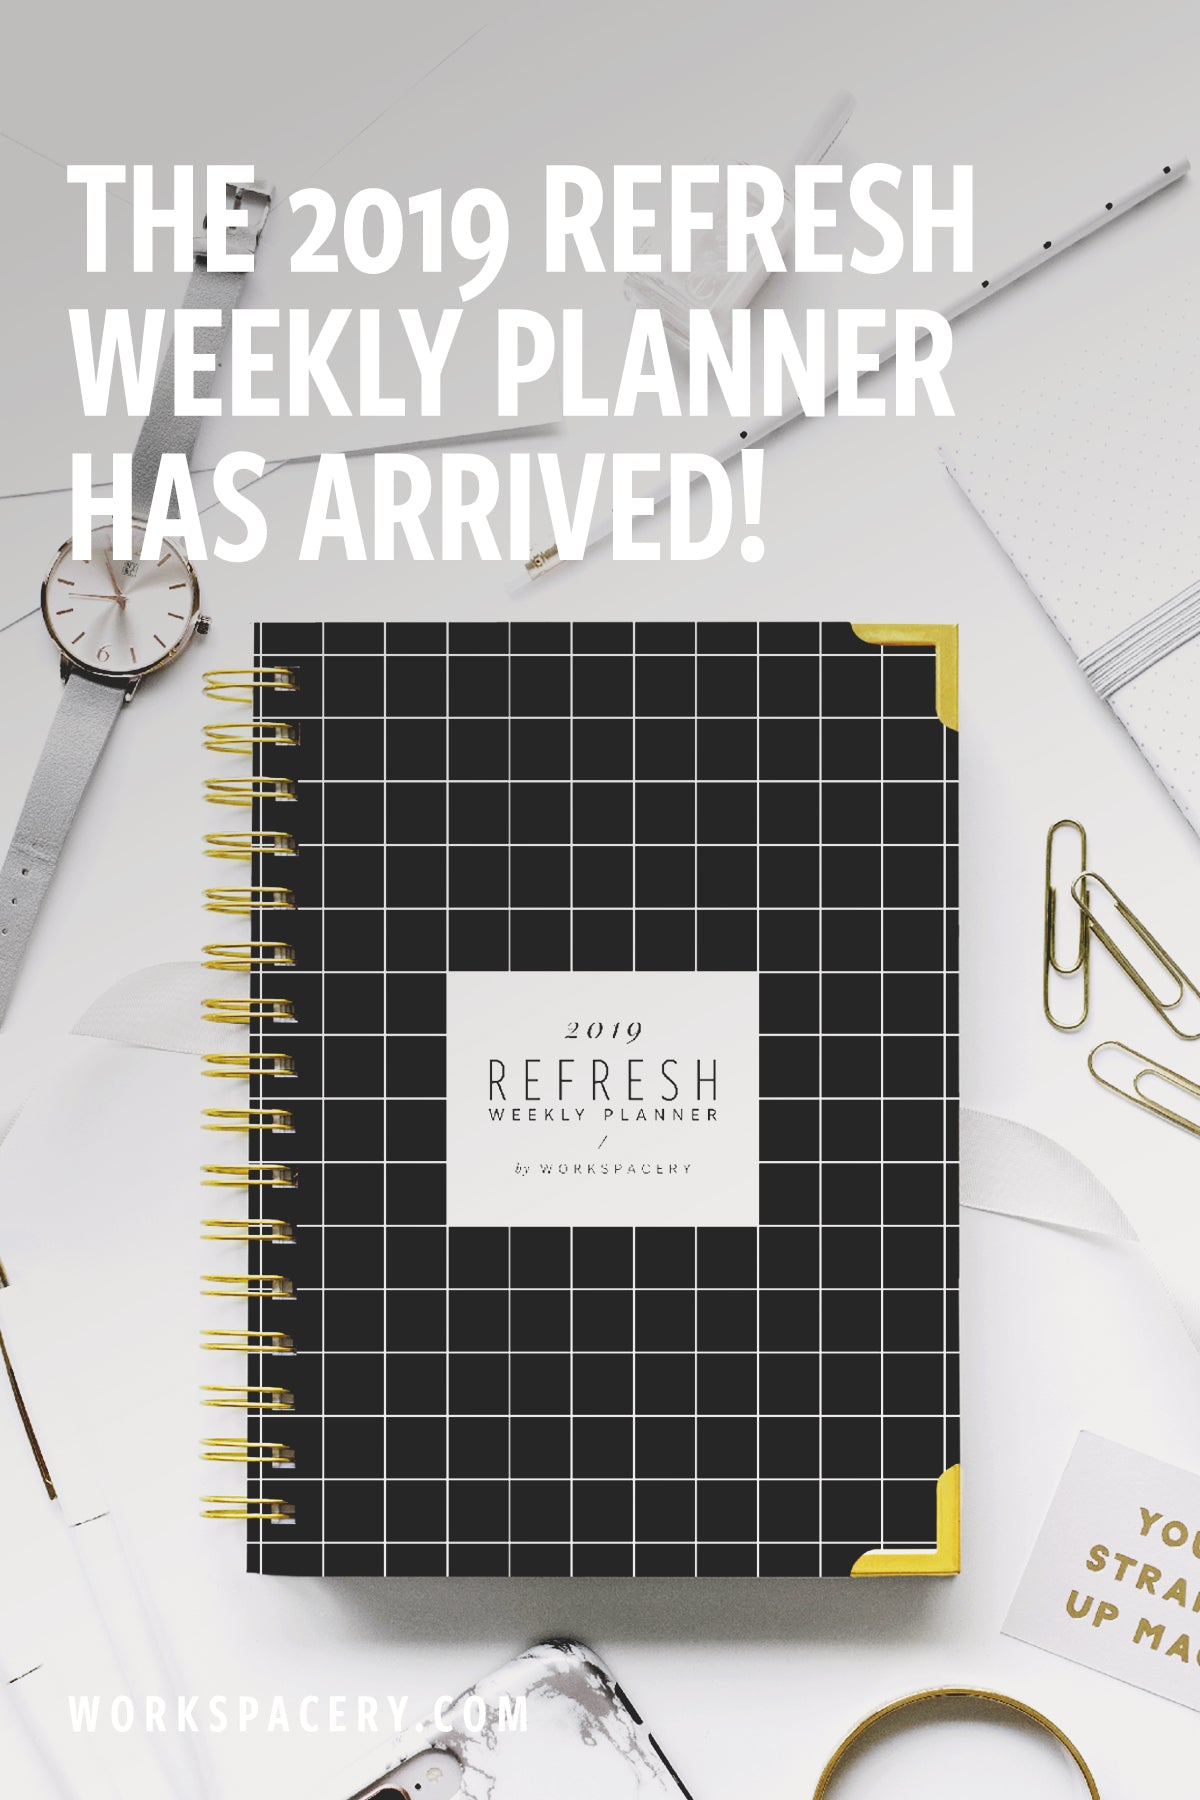 The 2019 Refresh Weekly Planner has Arrived